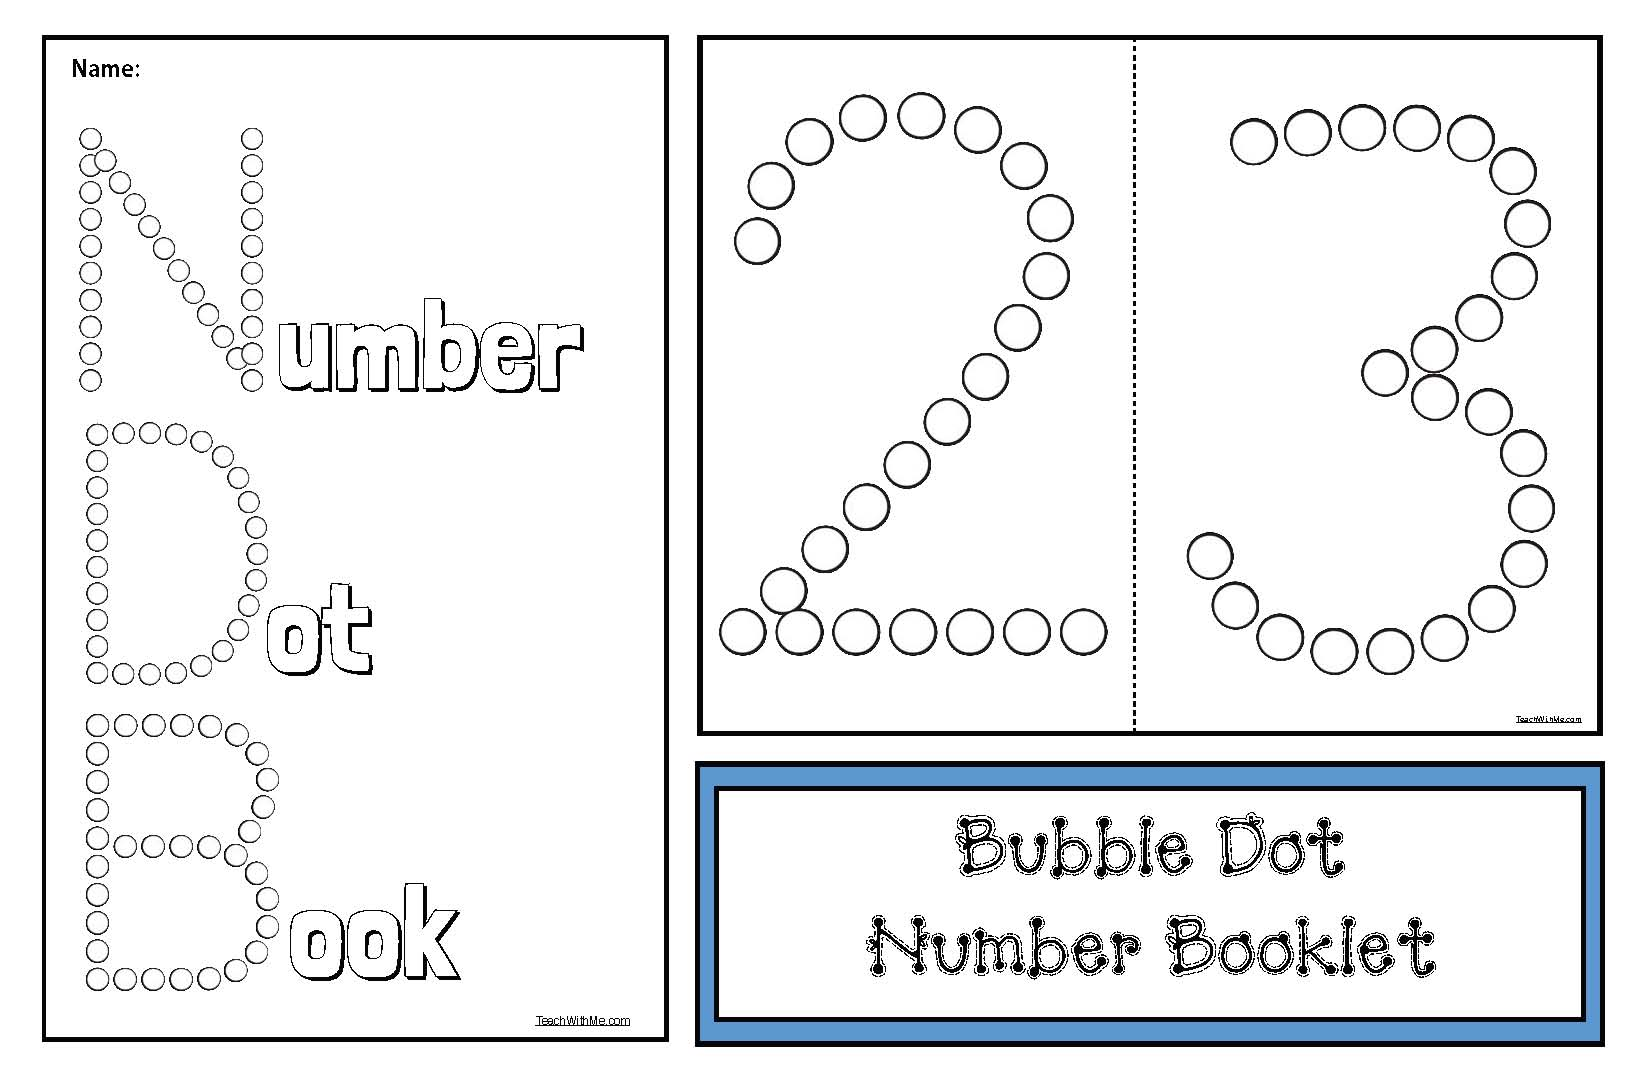 number booklet, number posters, coloring pages for numbers, number recognition activities, counting activities, sequencing numbers, math posters, number puzzles, dot numbers, math centers, number crafts, math bulletin boards